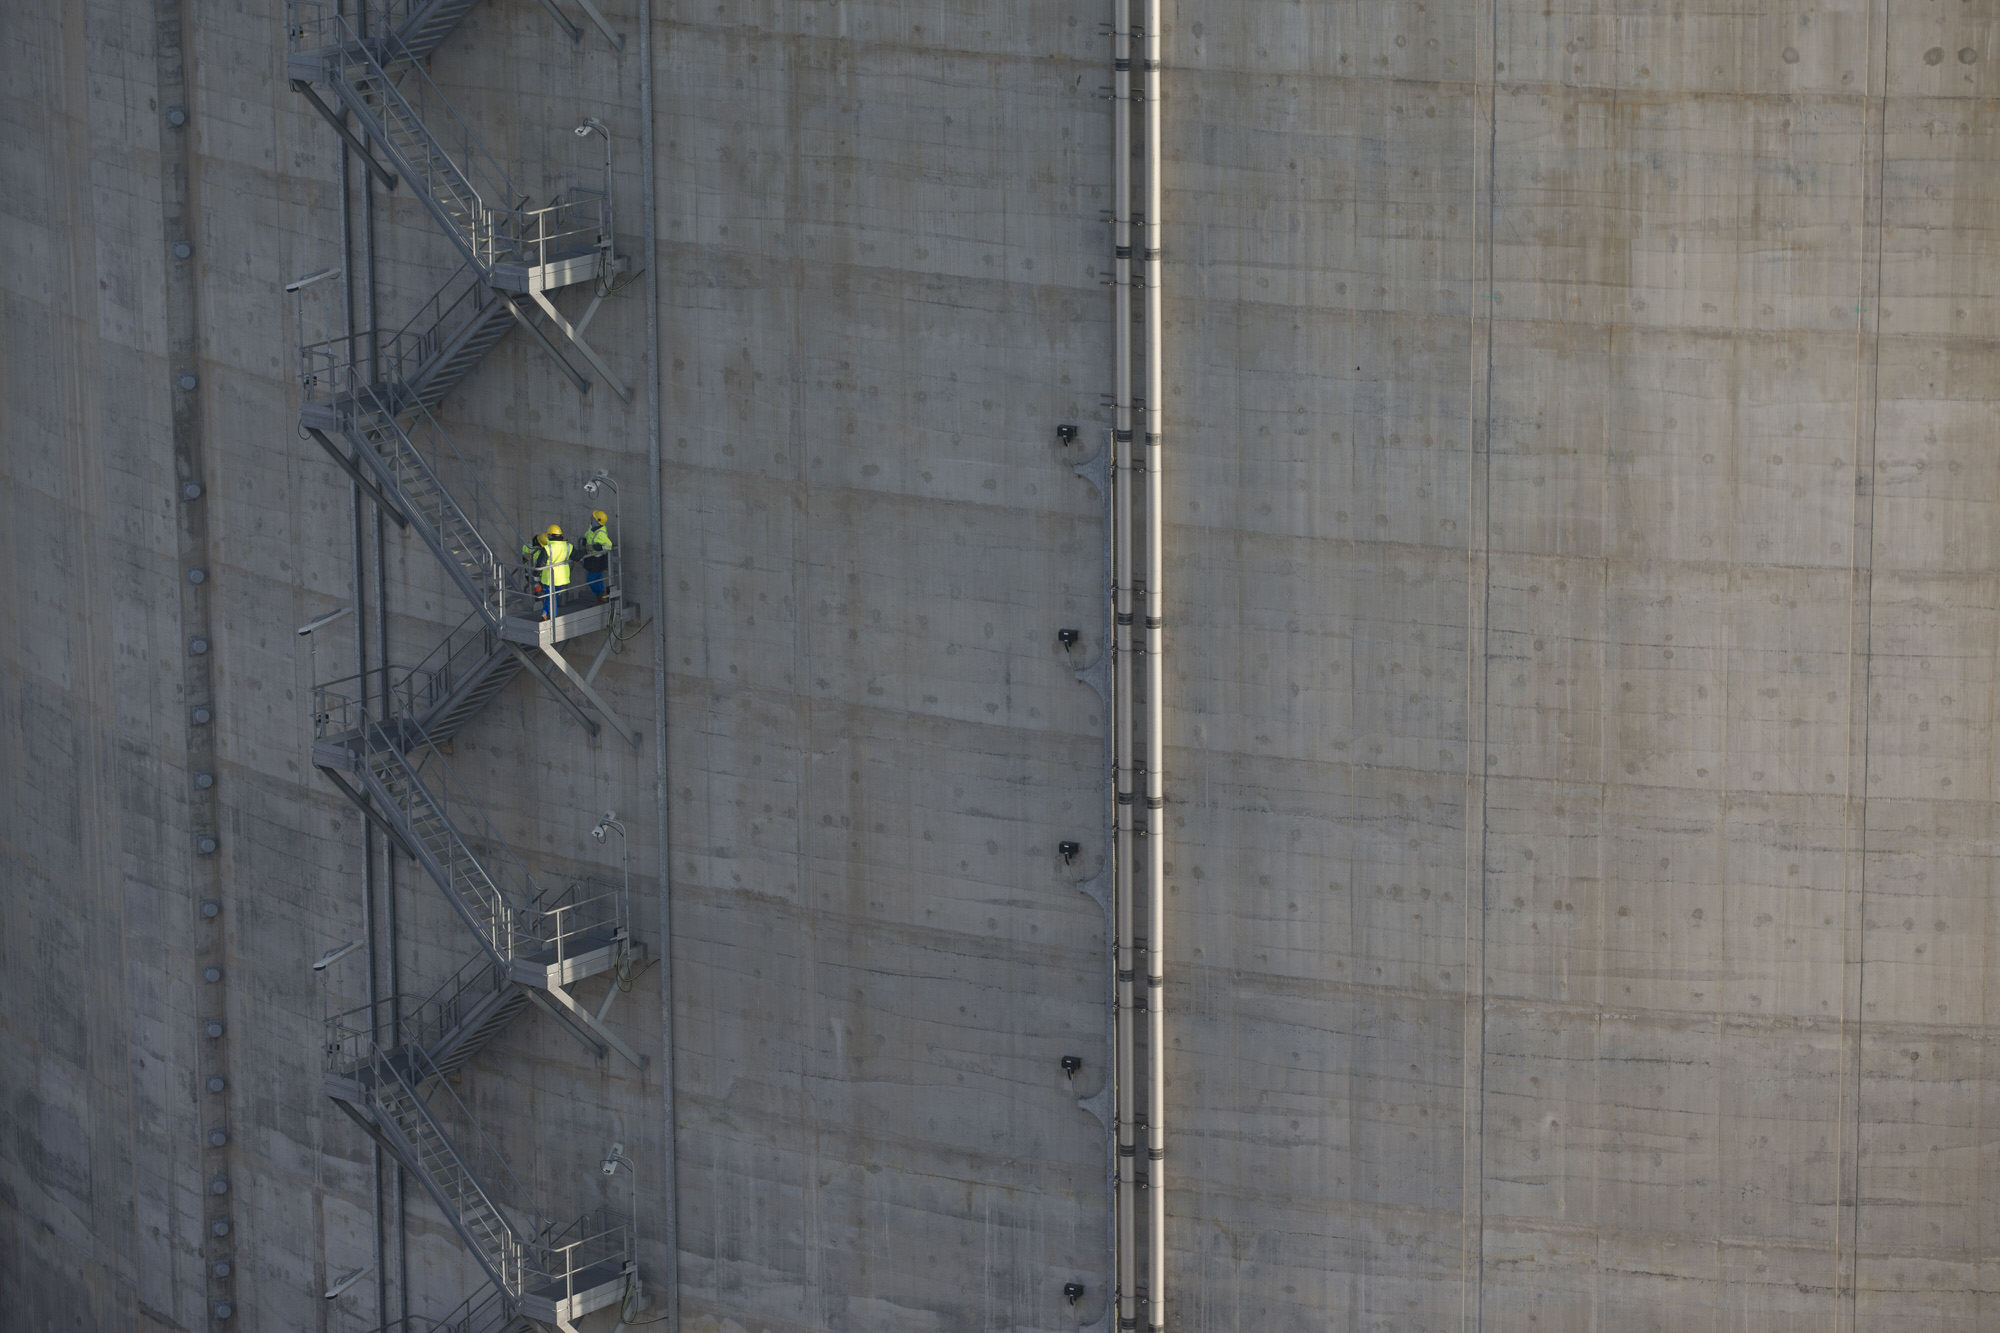 Workers stand on a storage silo staircase as construction work continues at the liquid natural gas (LNG) terminal, a unit of Electricite de France (EDF) SA, in Dunkirk, France, on Tuesday, March 15, 2016. The terminal, near the Belgian border, is poised to go into operation as LNG tankers head to Europe after demand waned elsewhere. Photographer: Jasper Juinen/Bloomberg